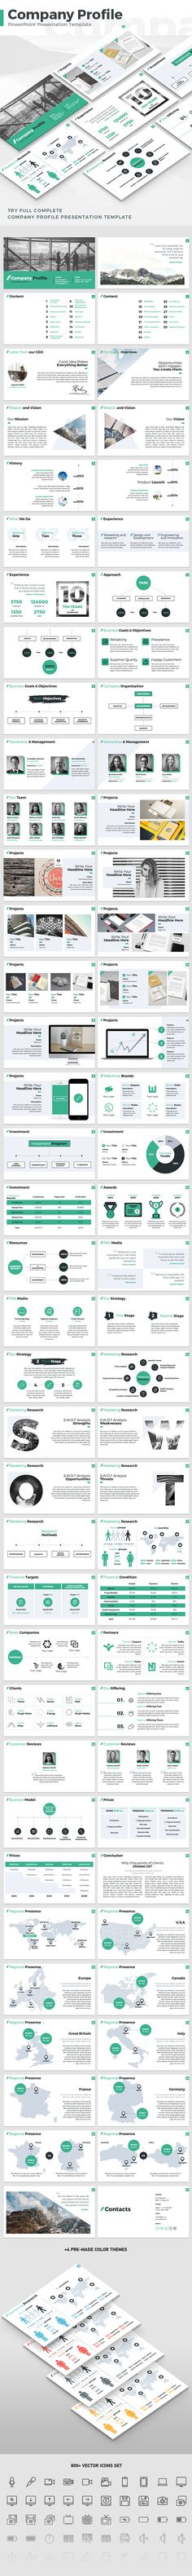 Company Profile PowerPoint Presentation Template #brand #project • Download ➝ https://graphicriver.net/item/company-profile-powerpoint-presentation-template/18475743?ref=pxcr